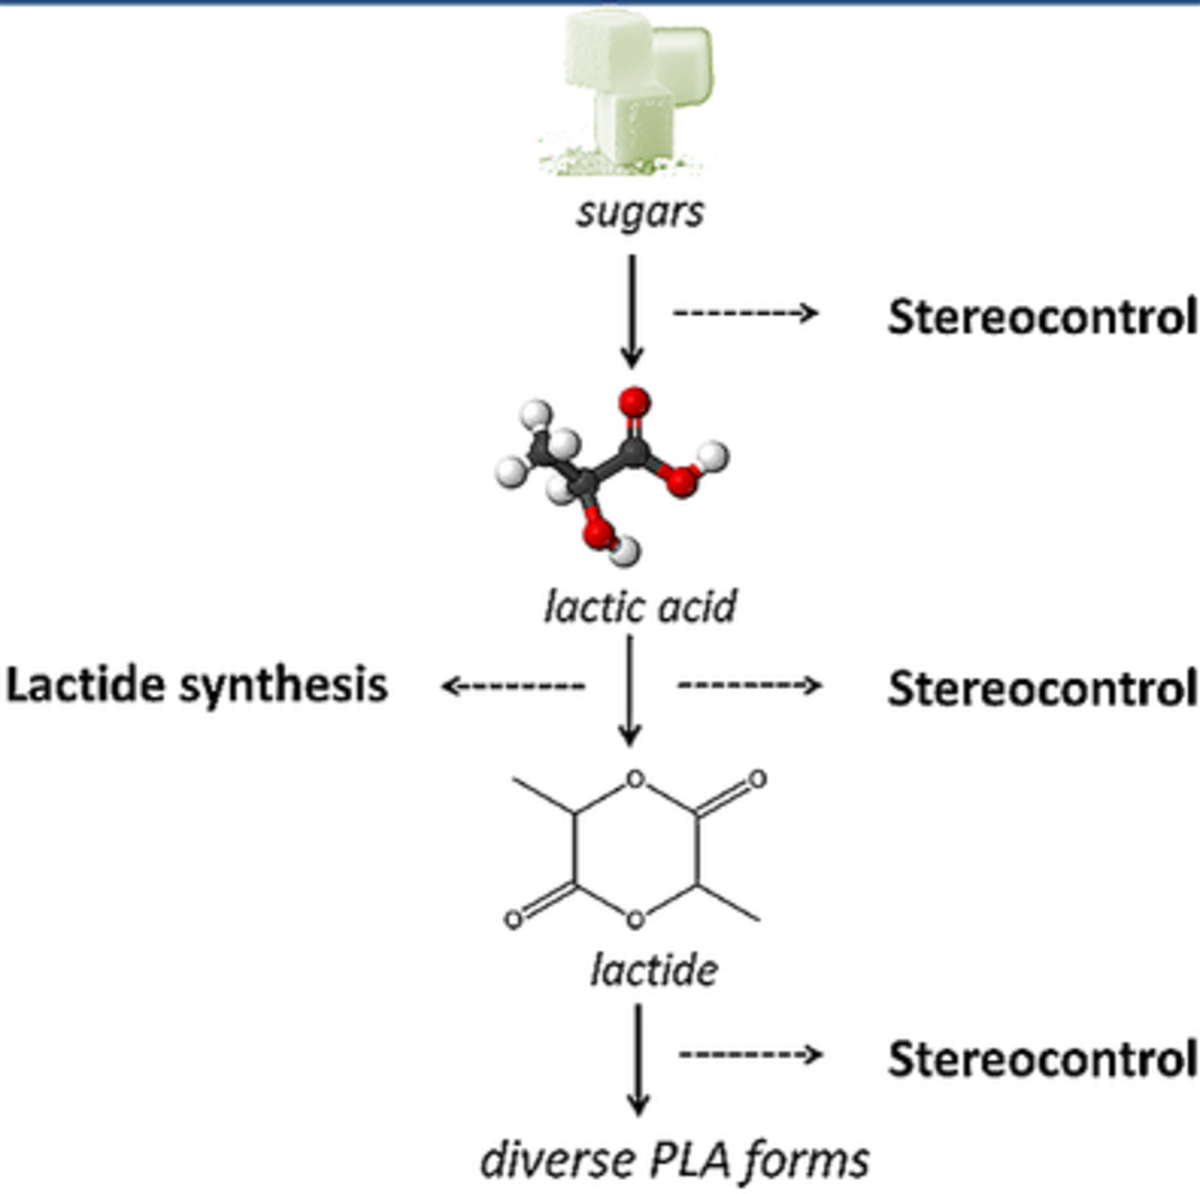 Lactide Synthesis and Chirality Control for Polylactic acid Production